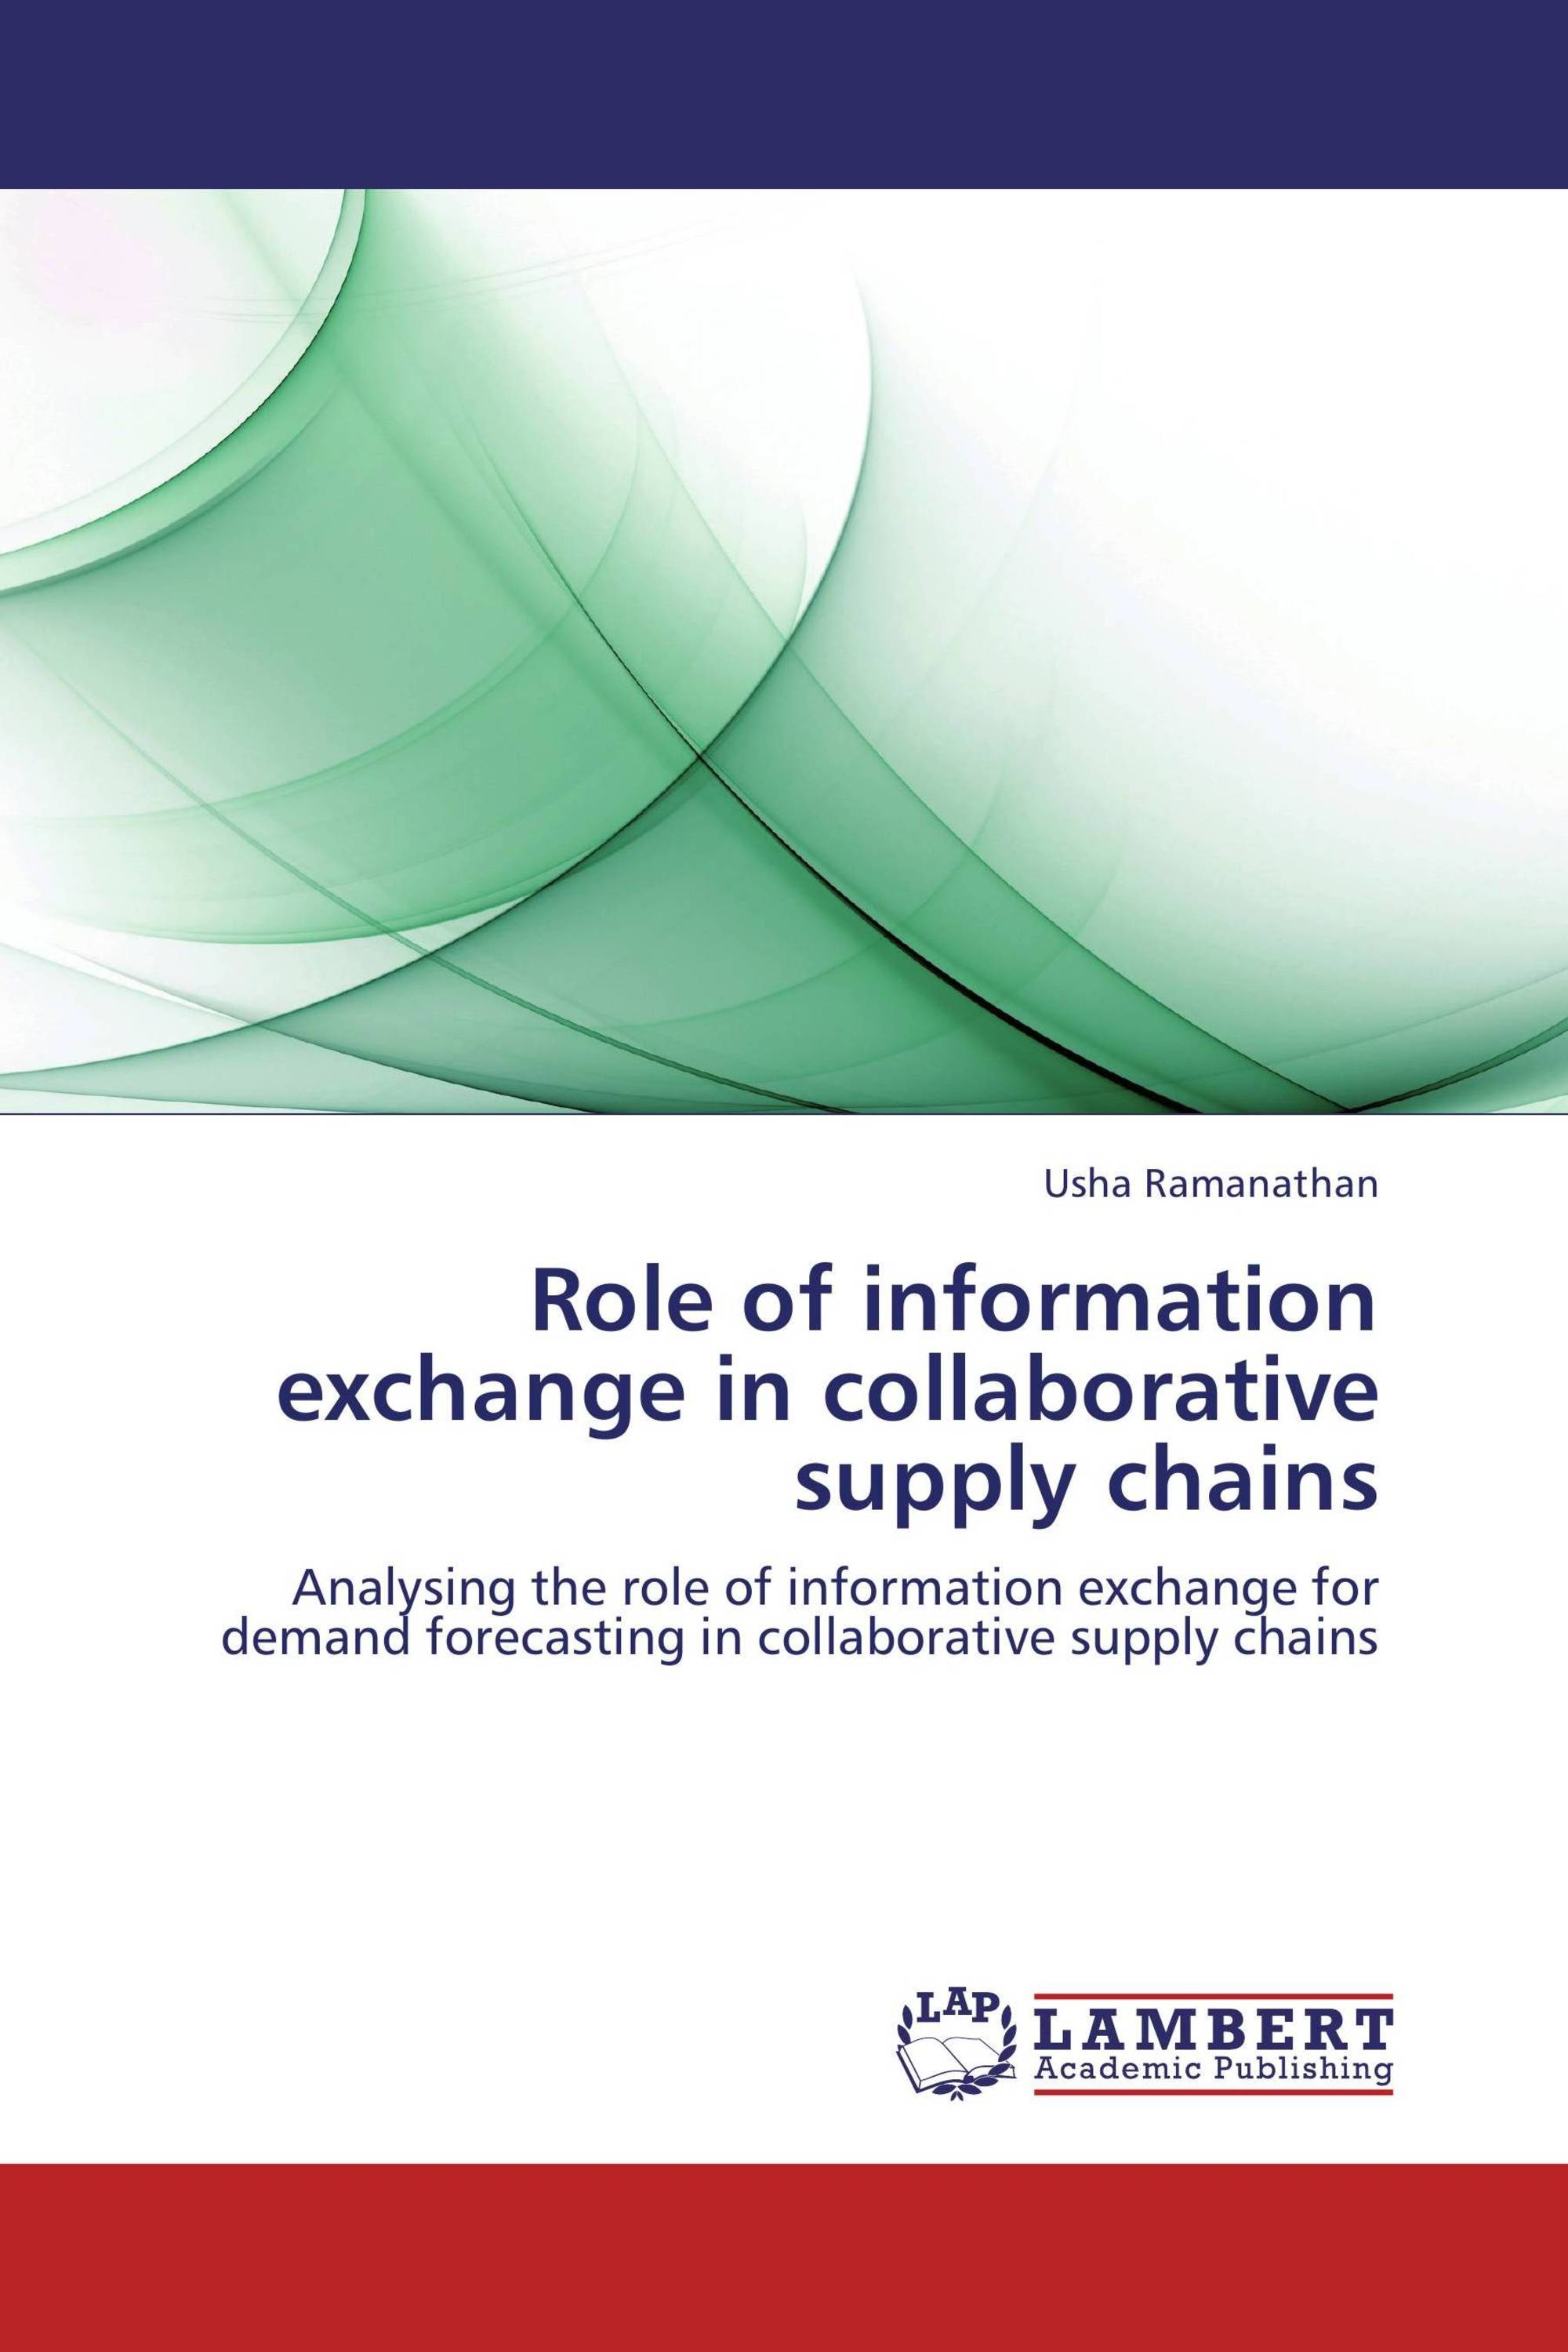 Role of information exchange in collaborative supply chains